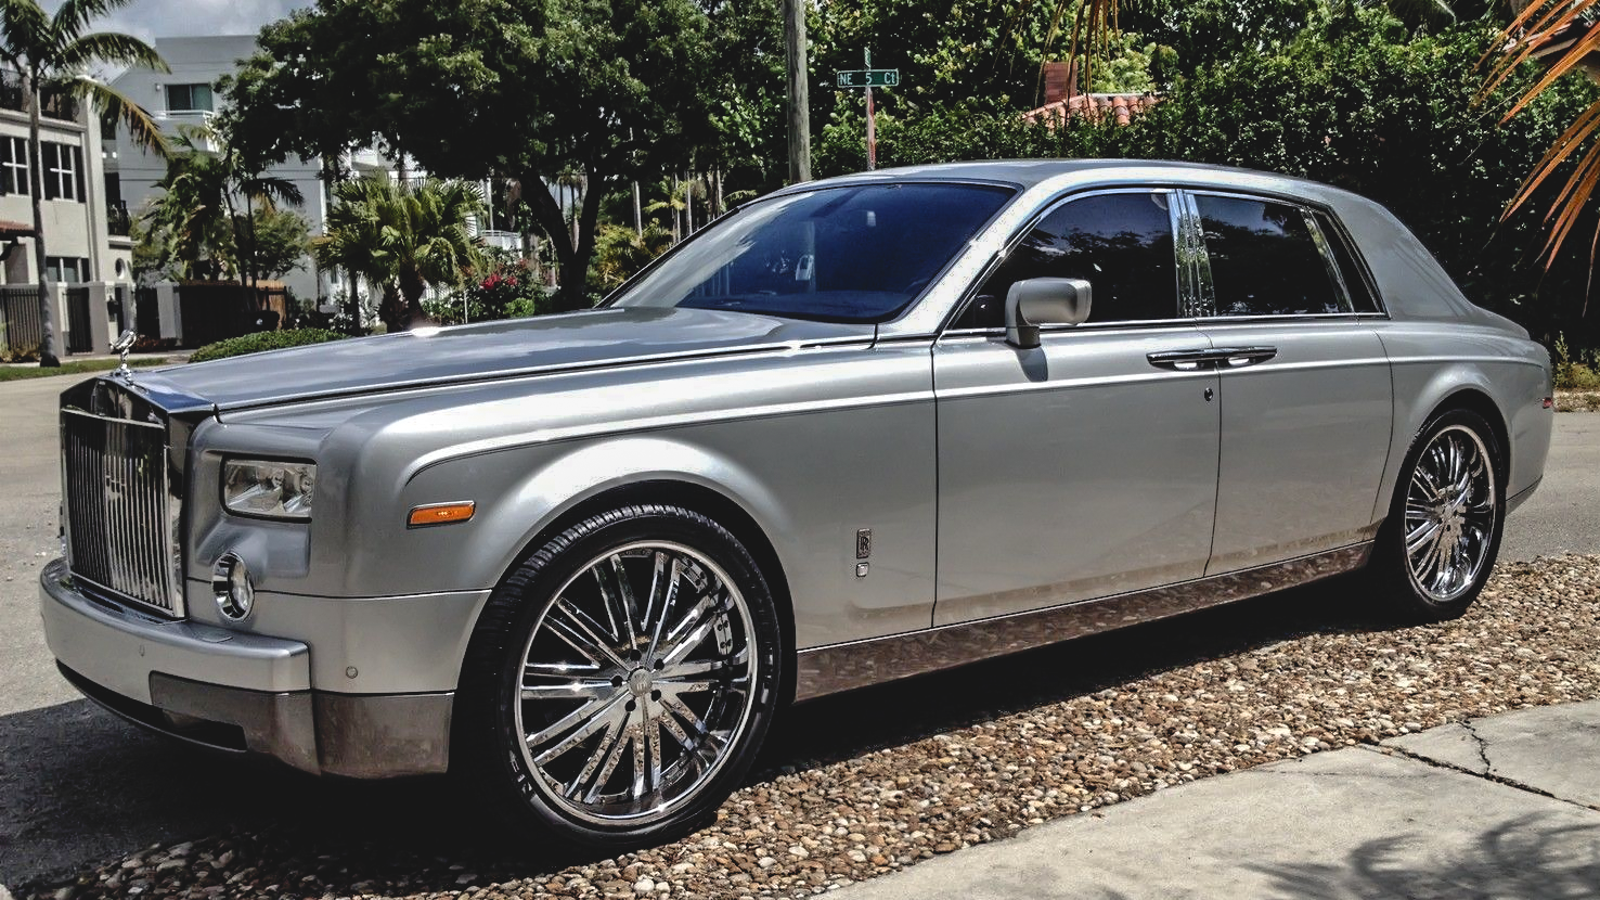 You Can Buy A Rolls Royce Phantom For The Price Of An S